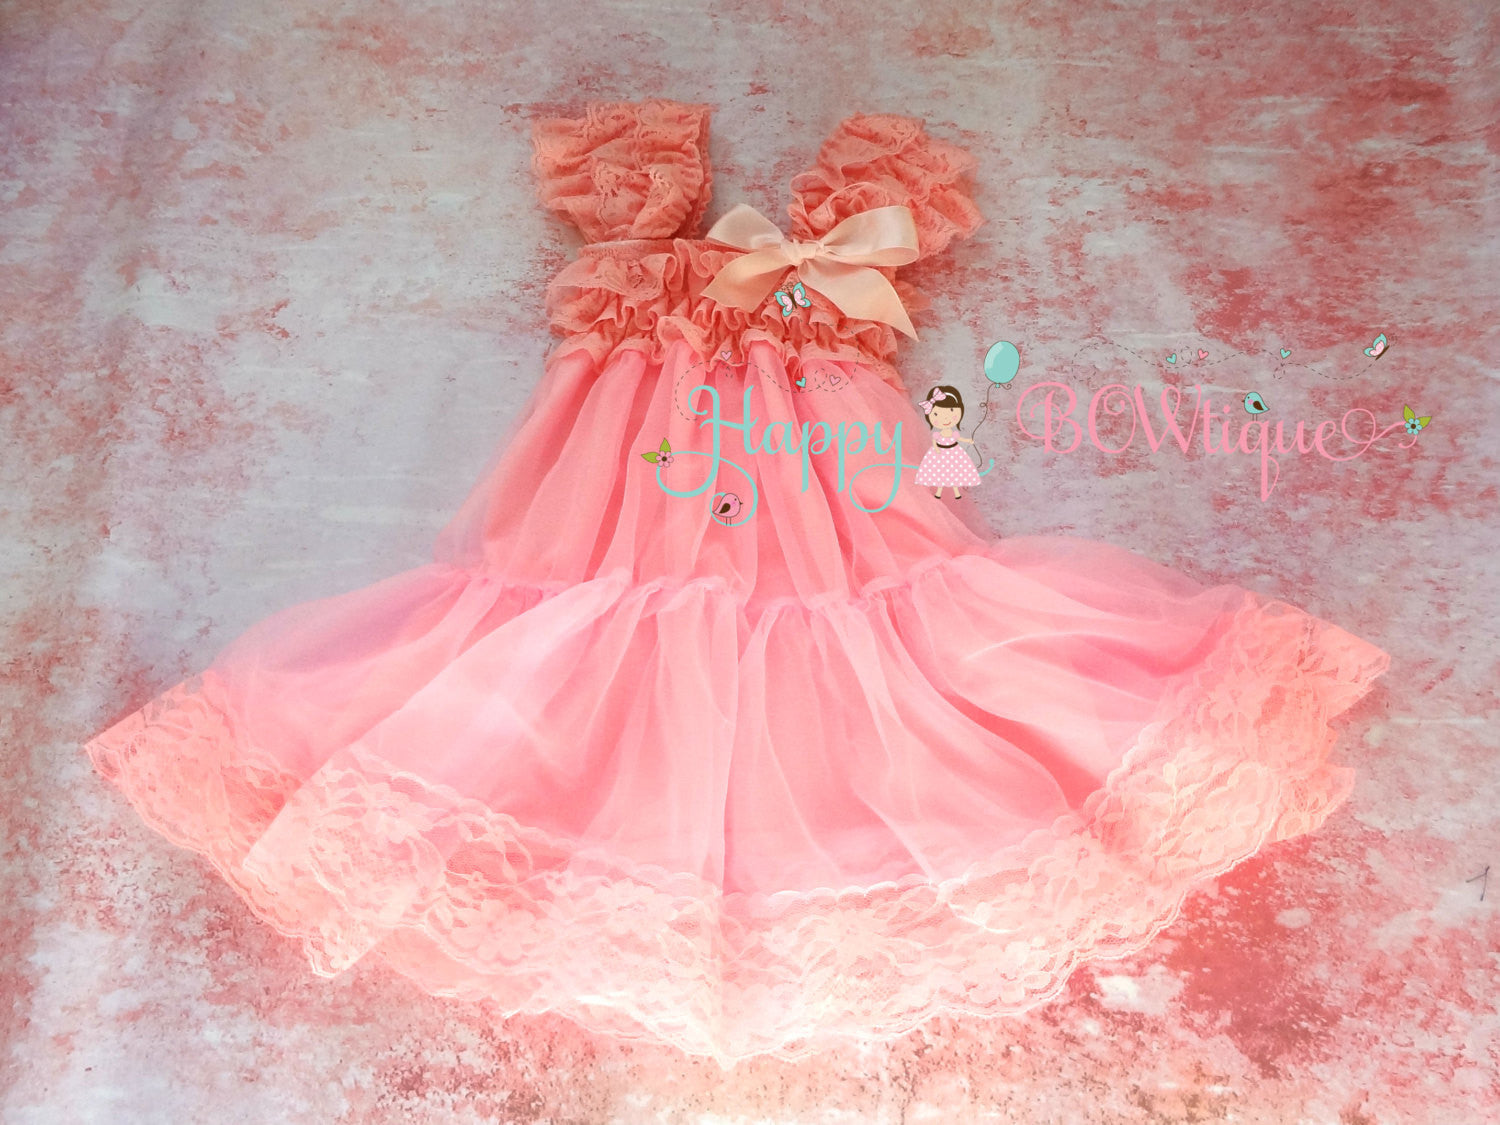 Girl Babydoll Pink Chiffon Lace Dress ~ Girl Light Pink Flowy Dress - Happy BOWtique - children's clothing, Baby Girl clothing